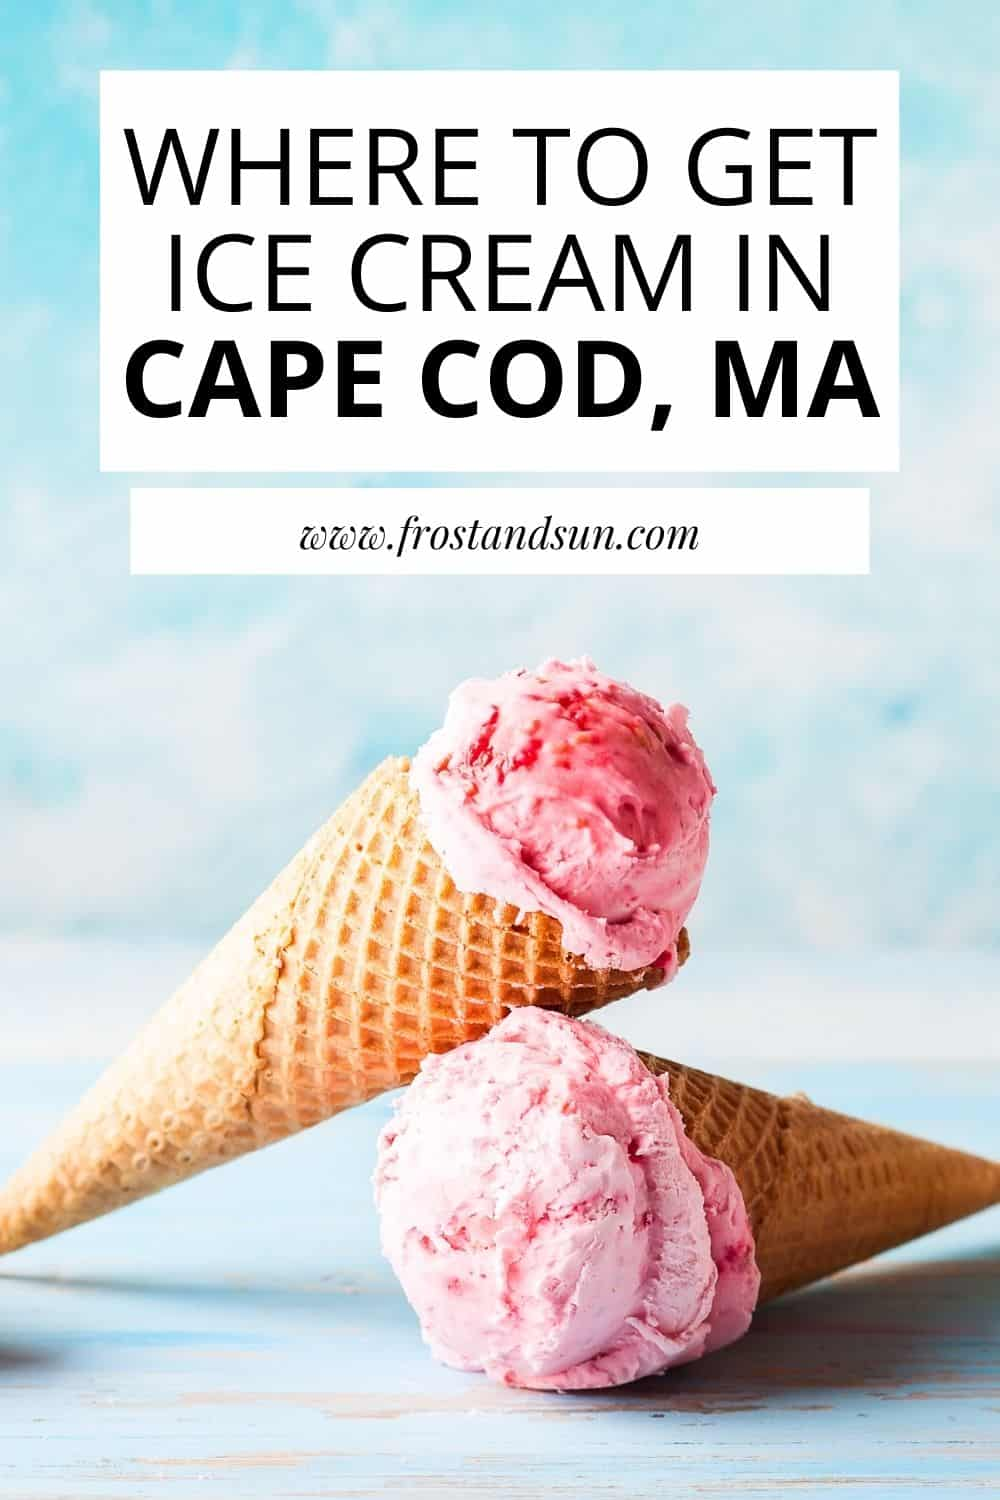 The Best Places to Get Ice Cream in Cape Cod, MA